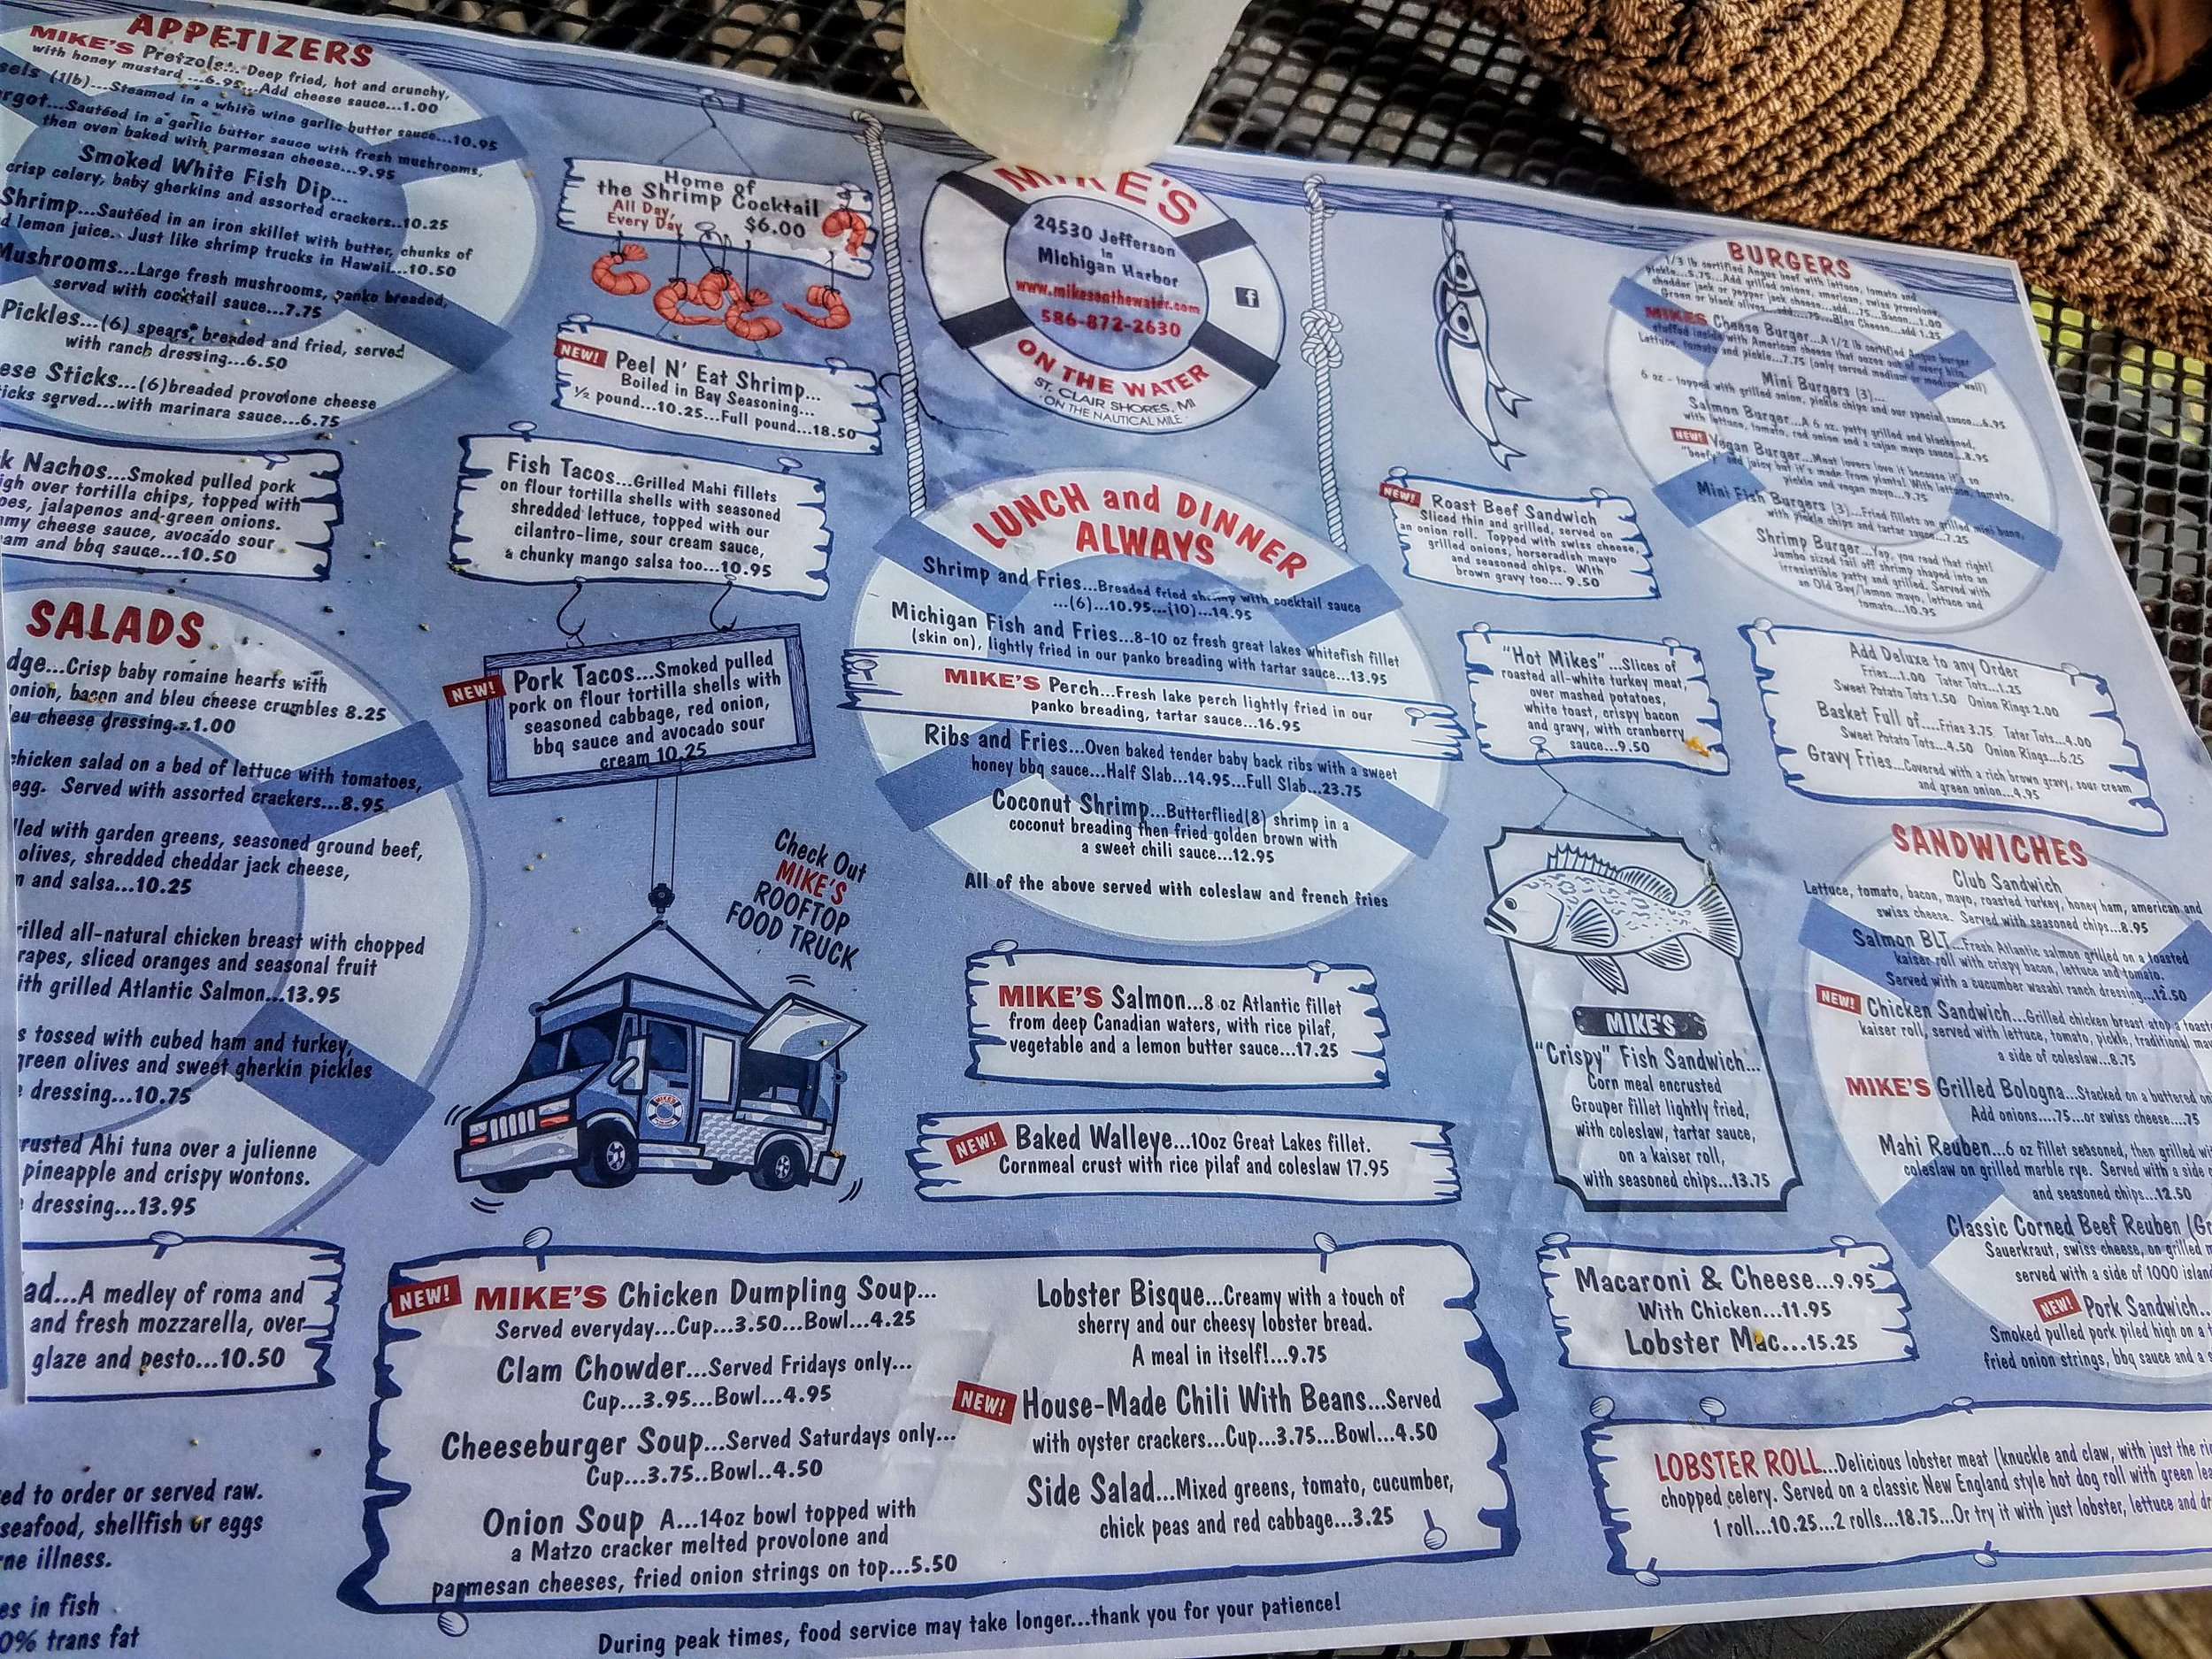 The menu at Mikes on the Water in St. Clair Shores